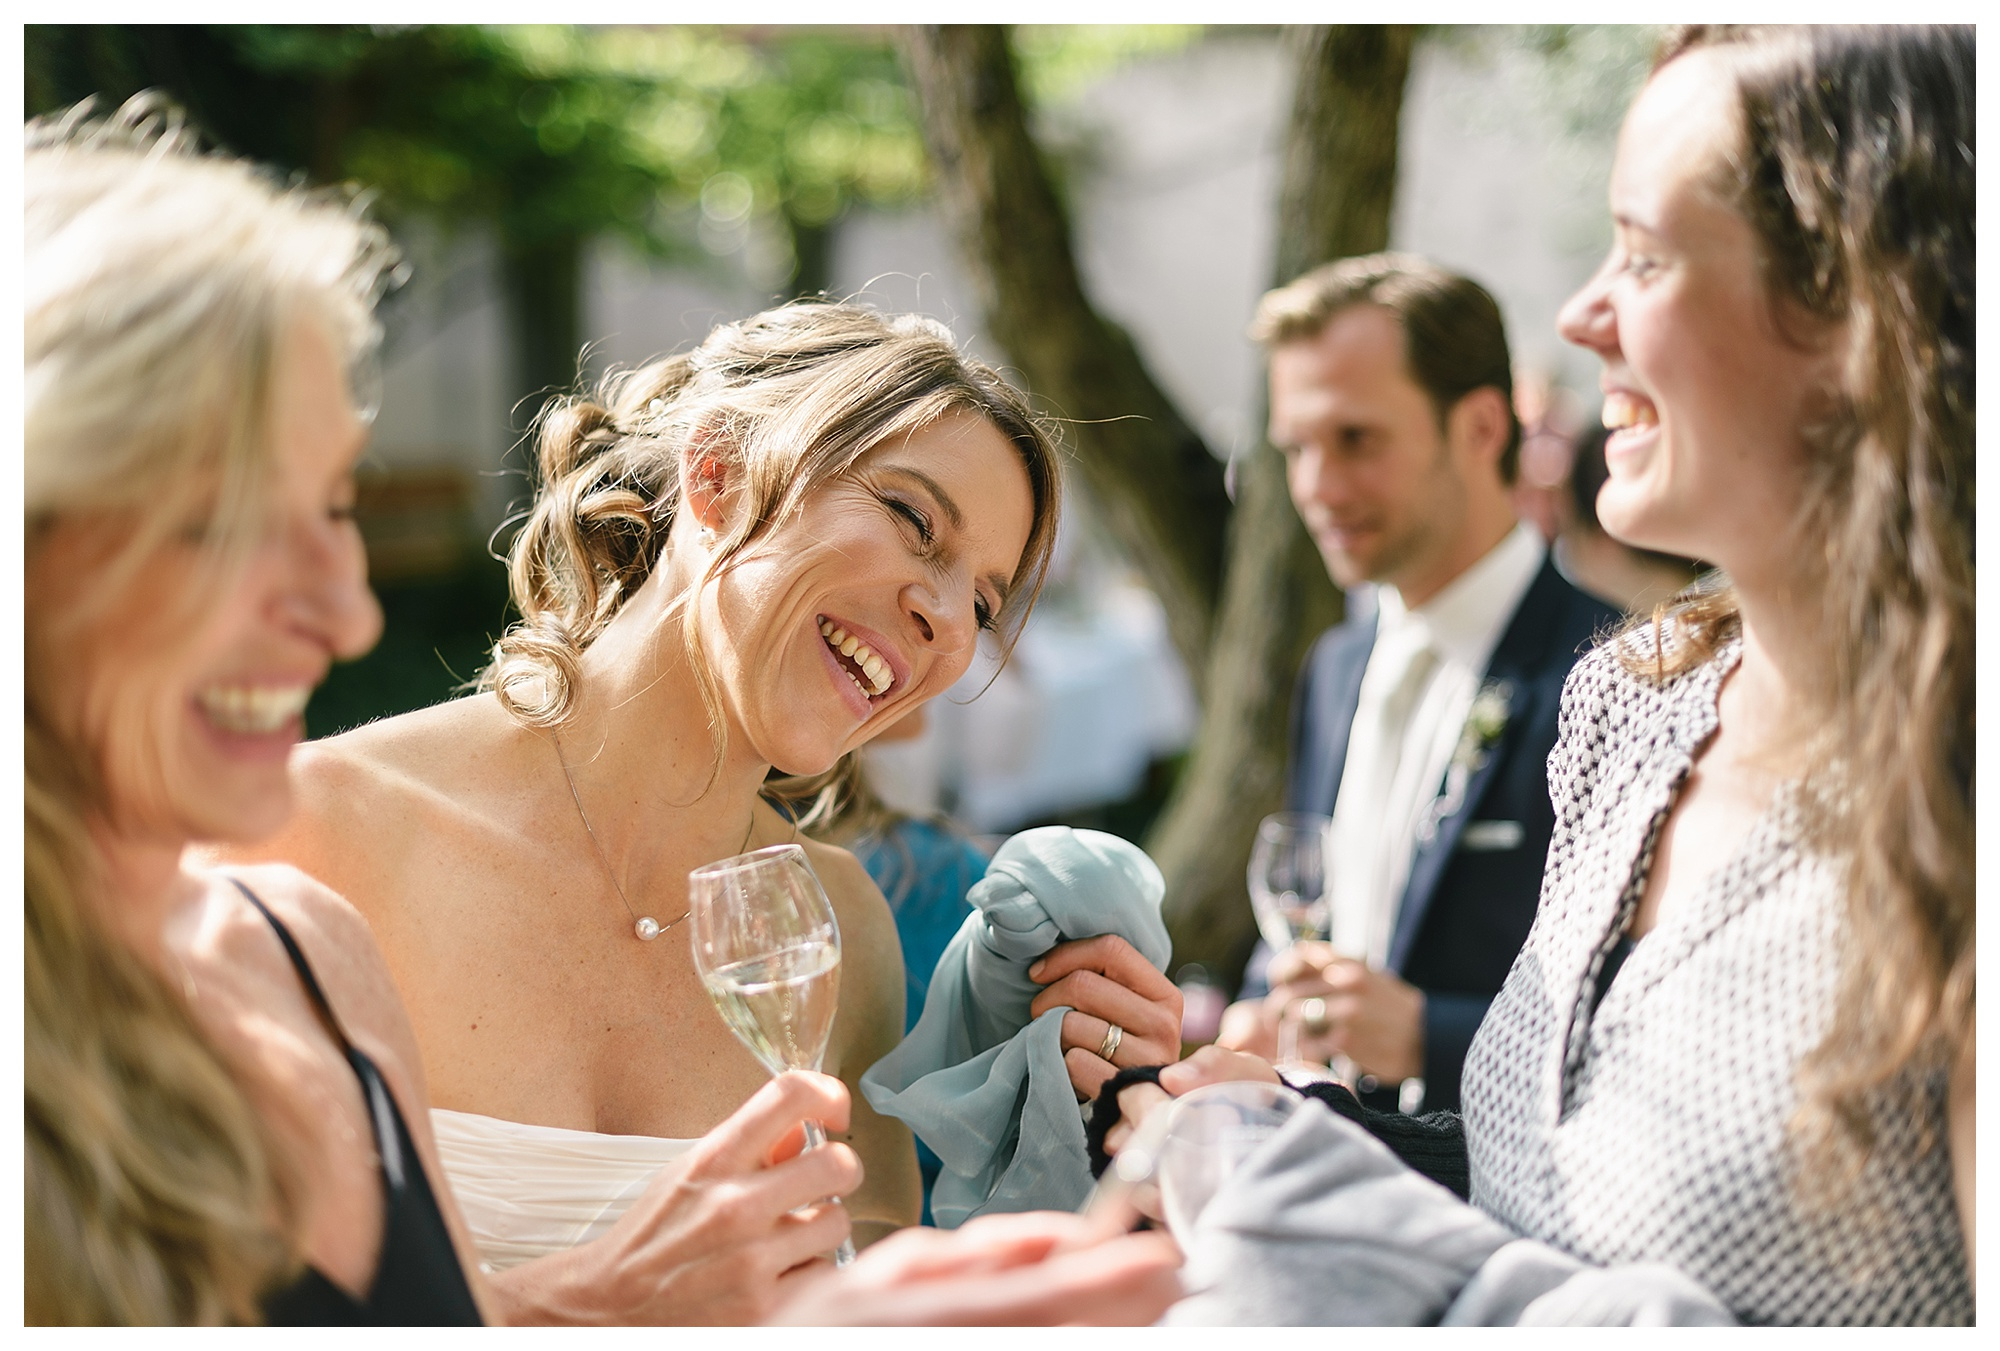 Fotograf Konstanz - Hochzeitsreportage Konstanz Raphael Nicole Elmar Feuerbacher Photography Hochzeit Portrait 13 - Wedding in Constance at Lake of Constance  - 47 -